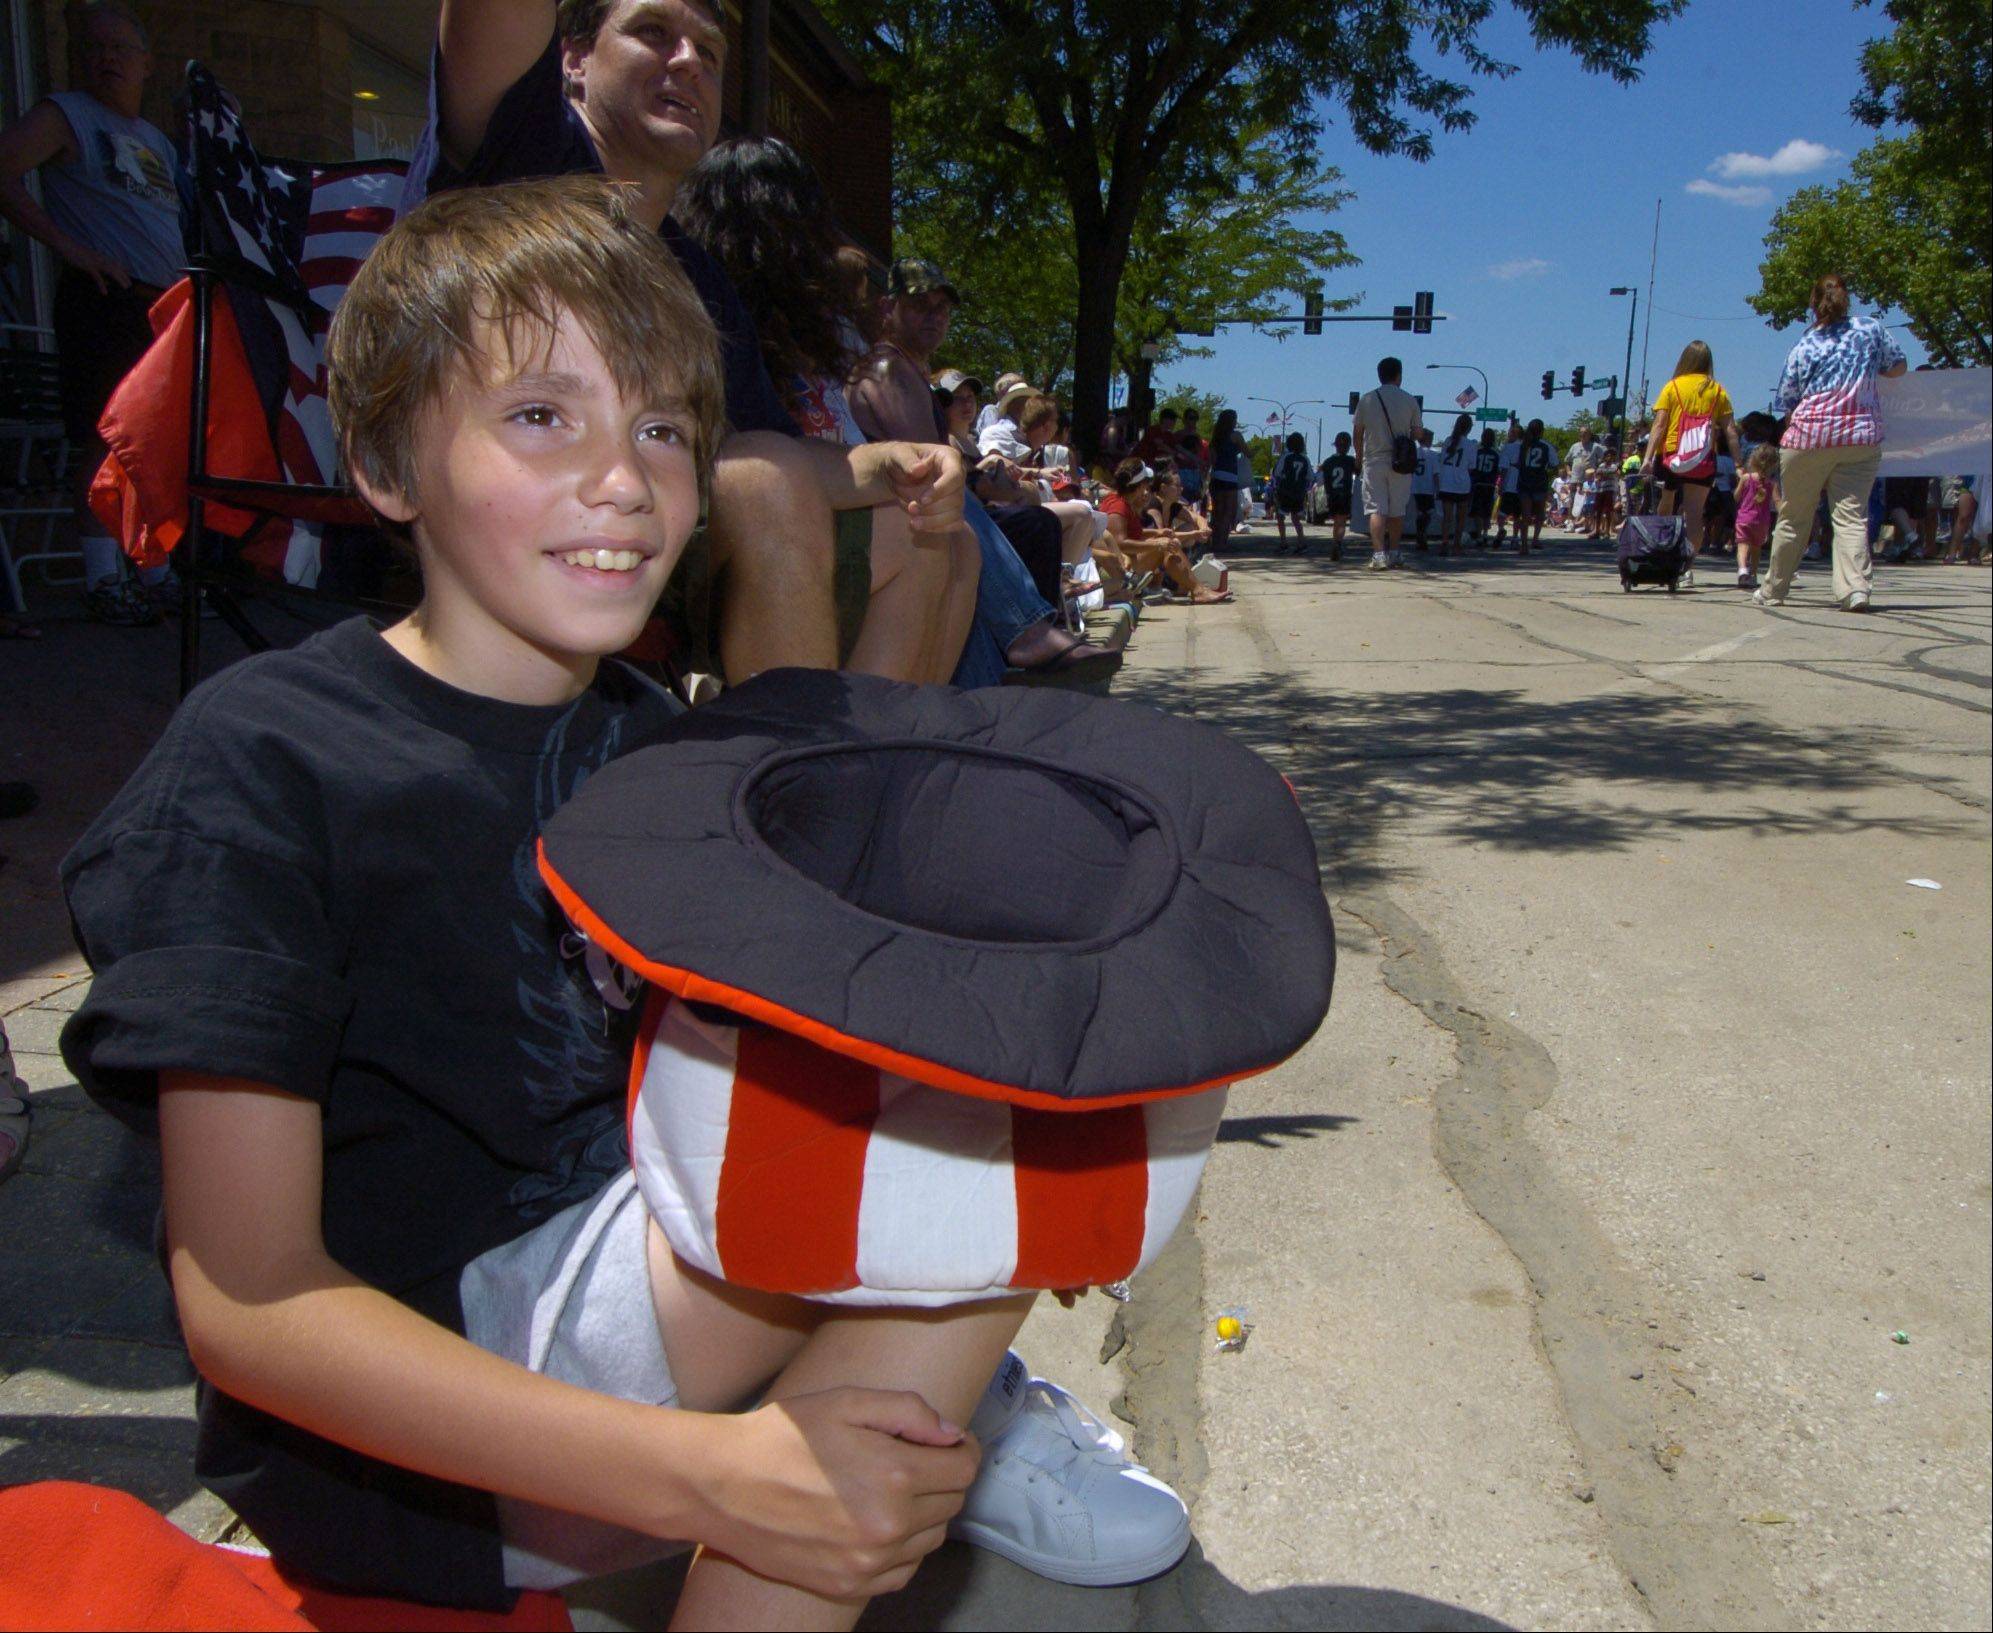 Garrett Hornak, 9, of Kildeer holds his hat out for candy during the Mount Prospect Fourth of July parade Monday.